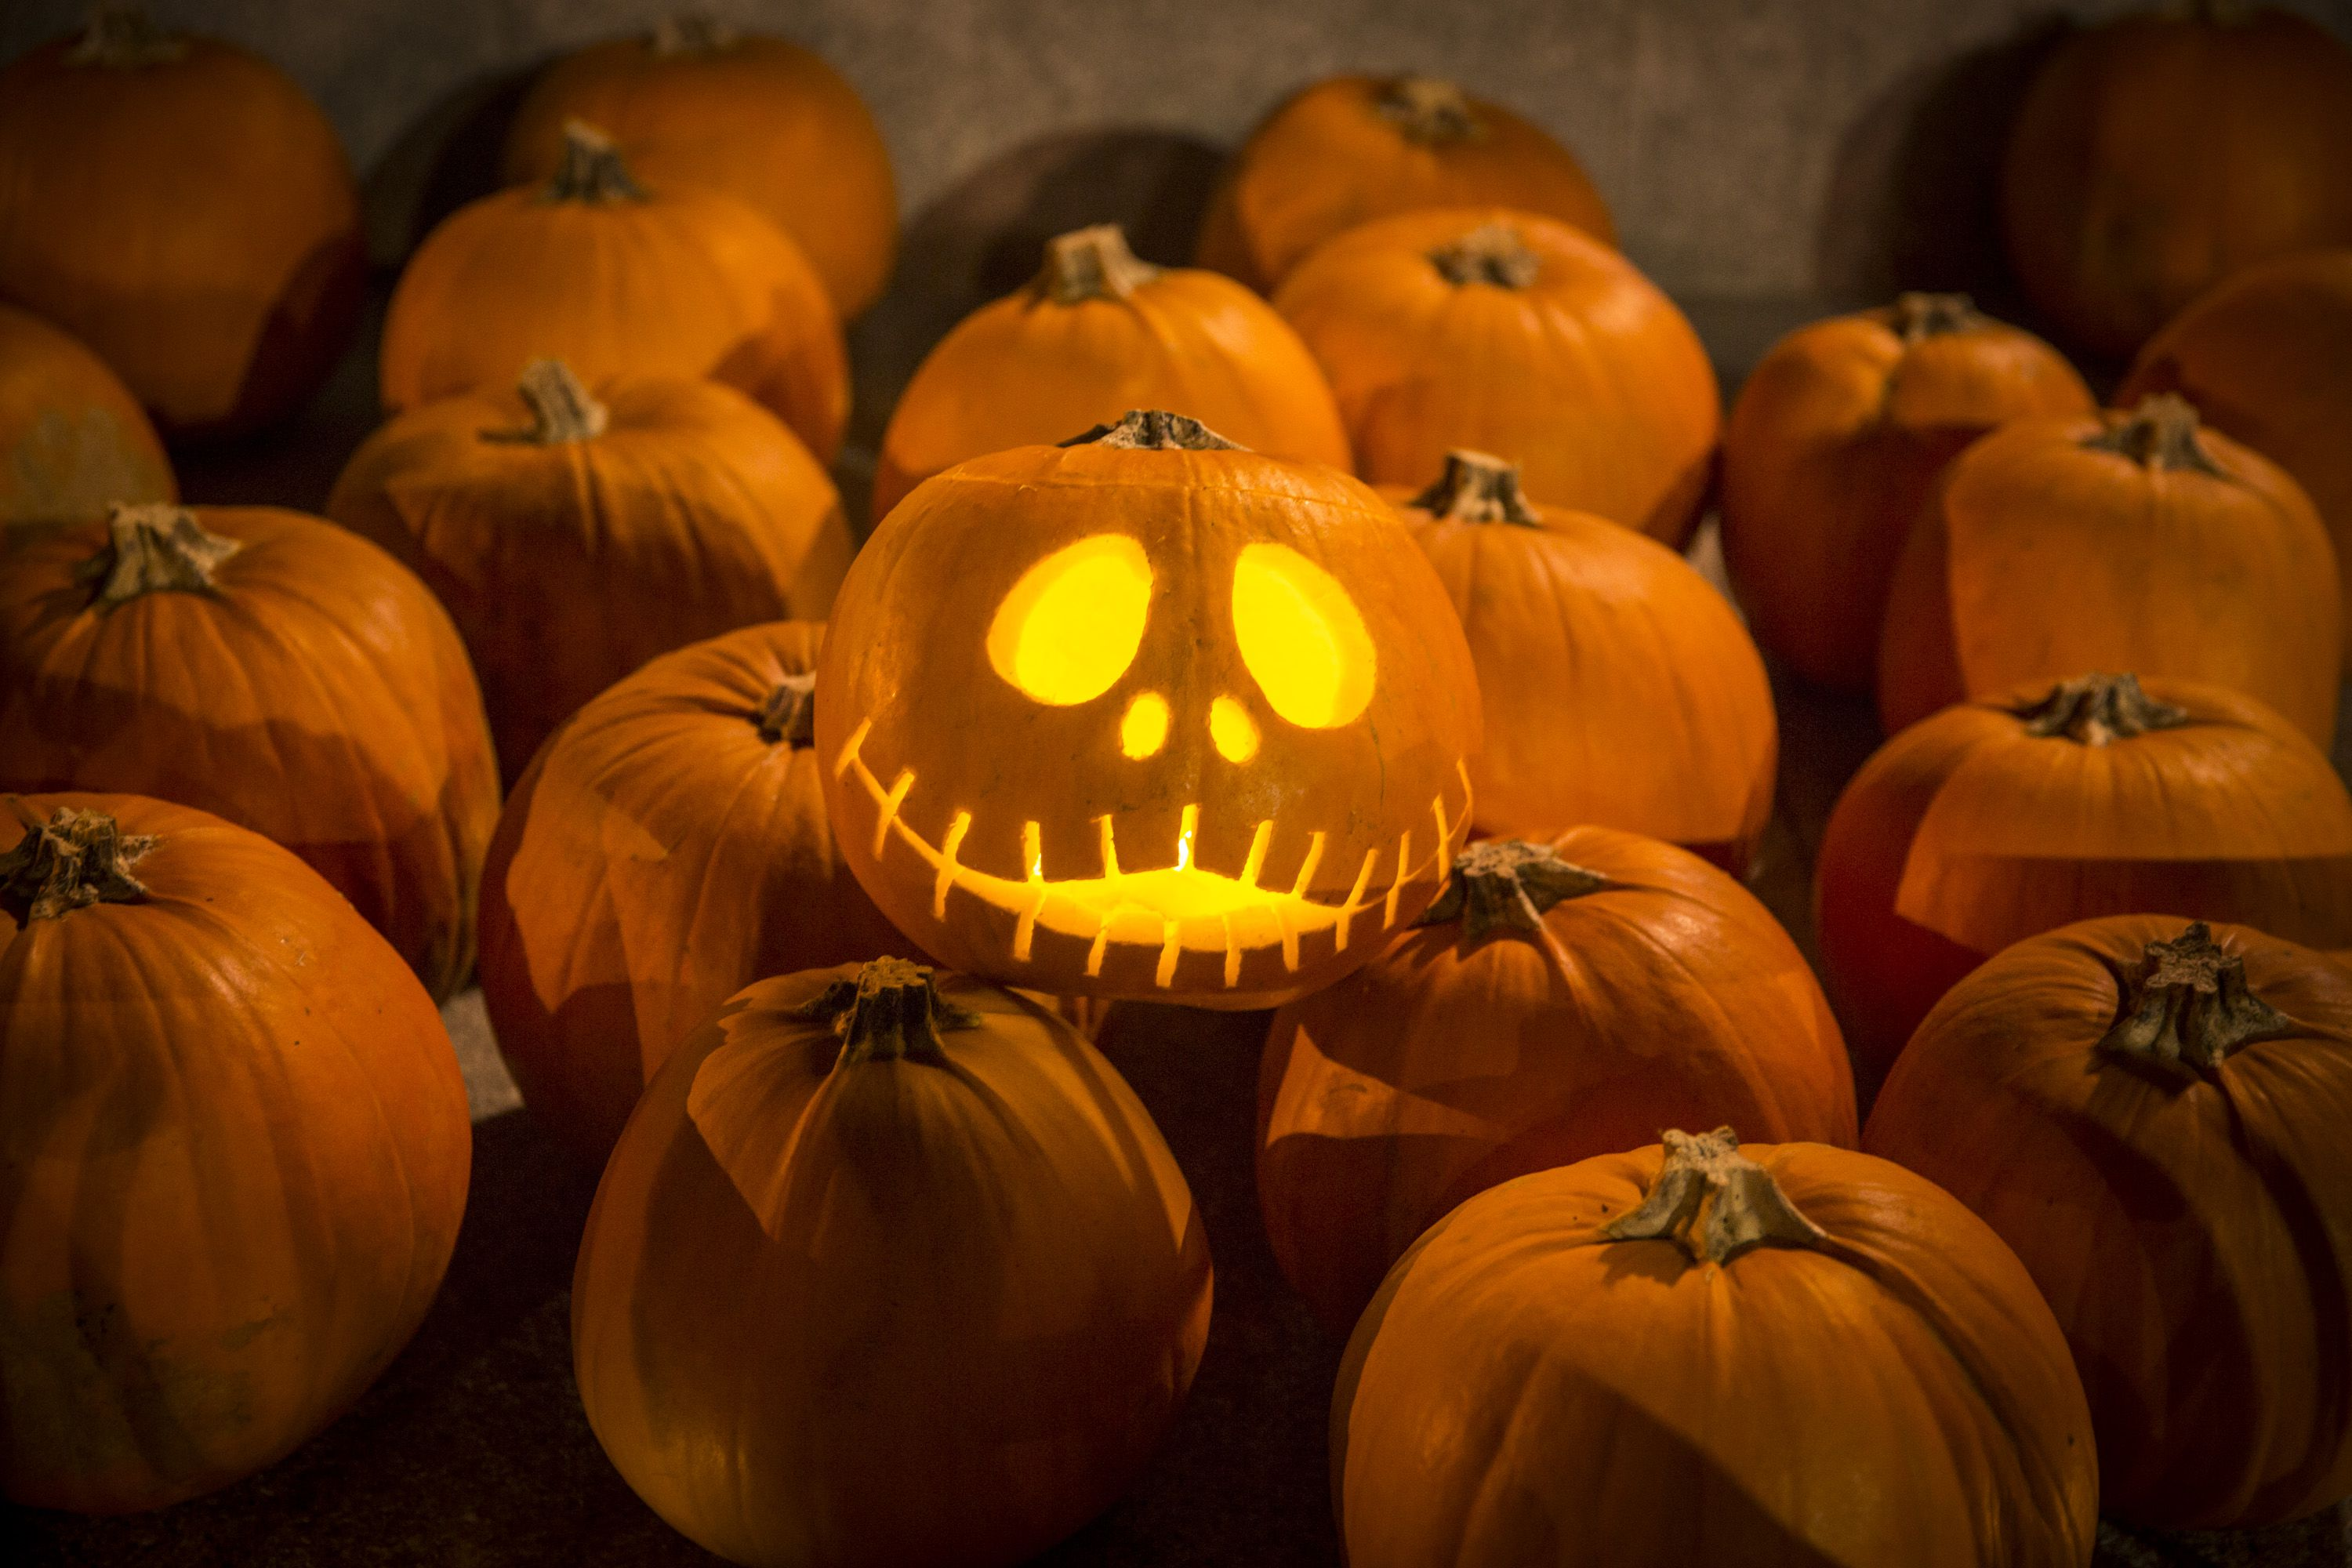 halloween in islam: should muslims celebrate?